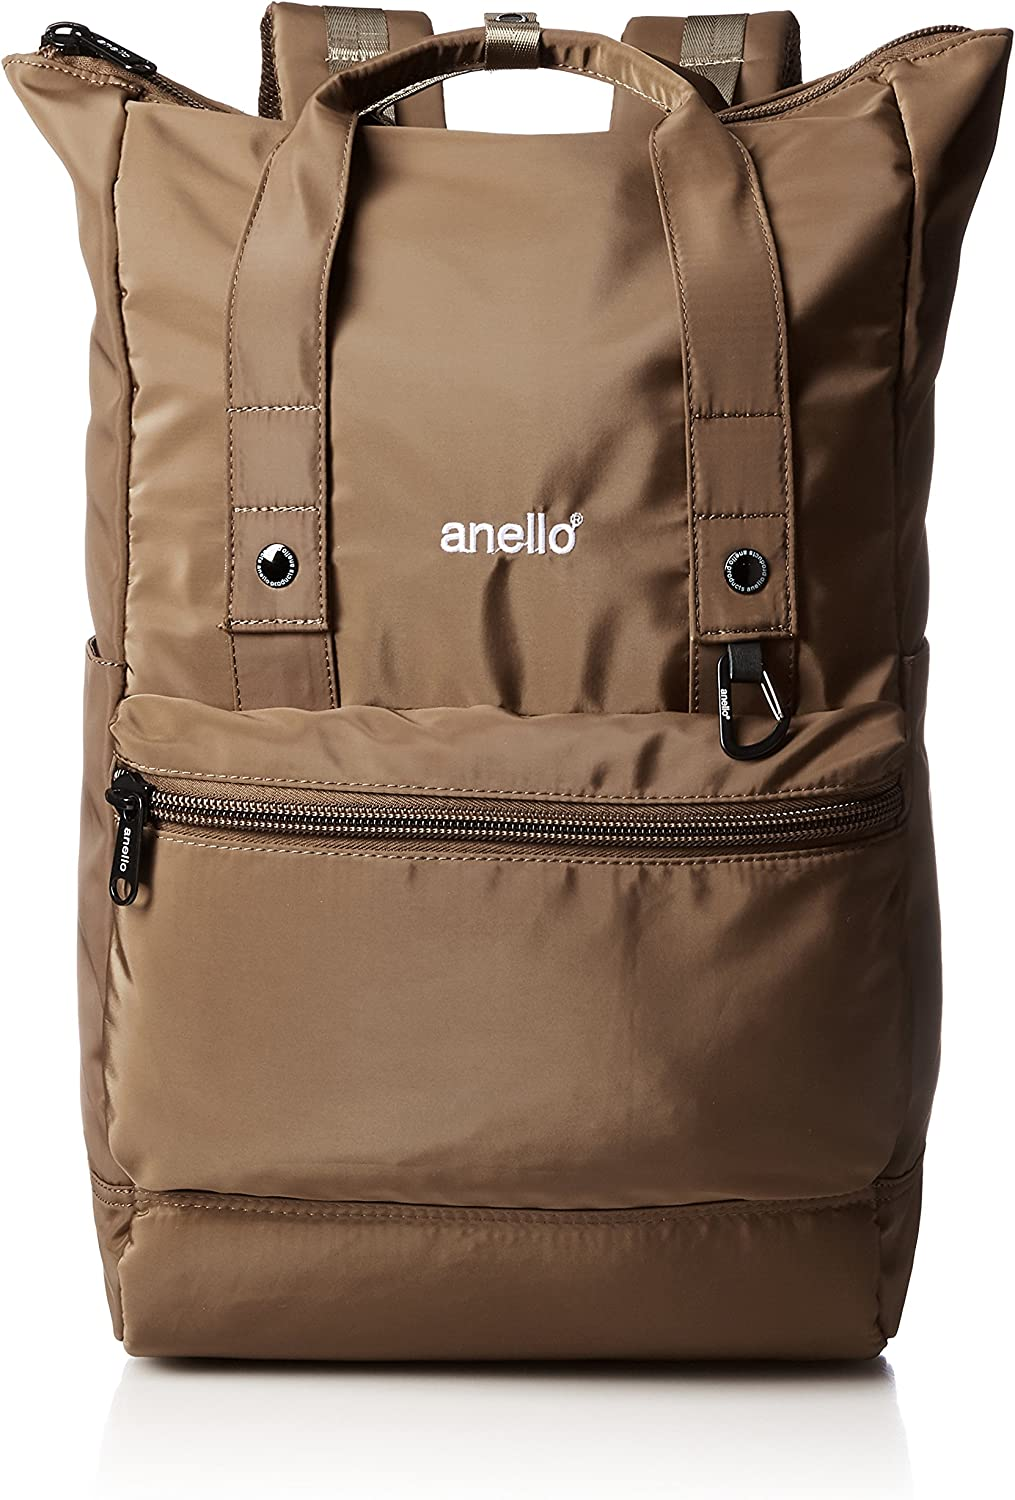 Anello backpack AT-B1681 COY Coyote